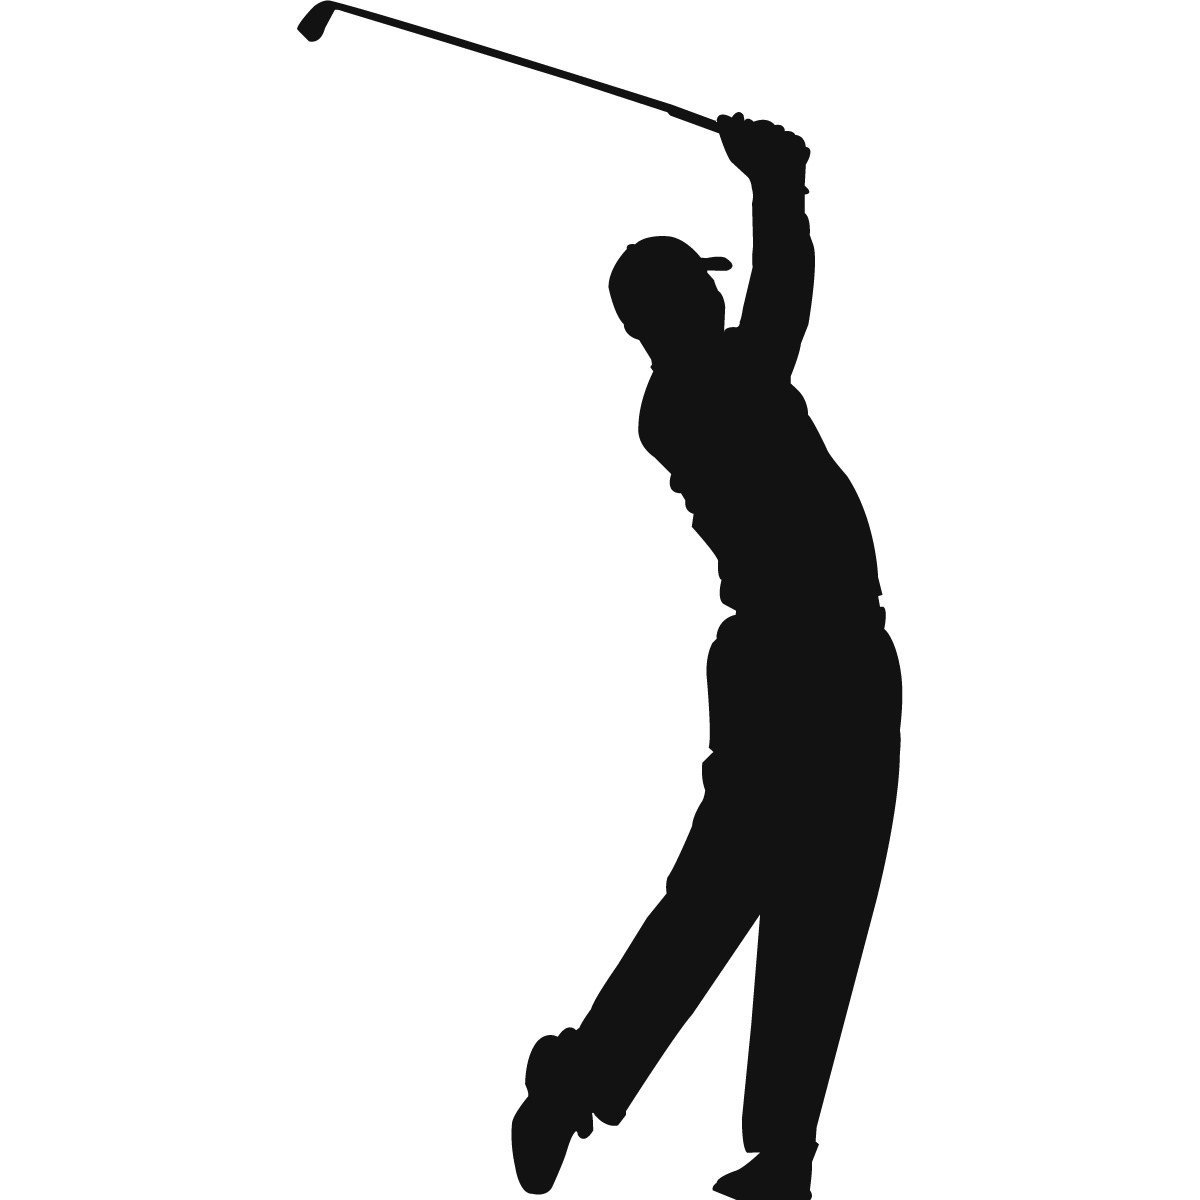 Golf Silhouette Clip Art At Getdrawings Com Free For Personal Use